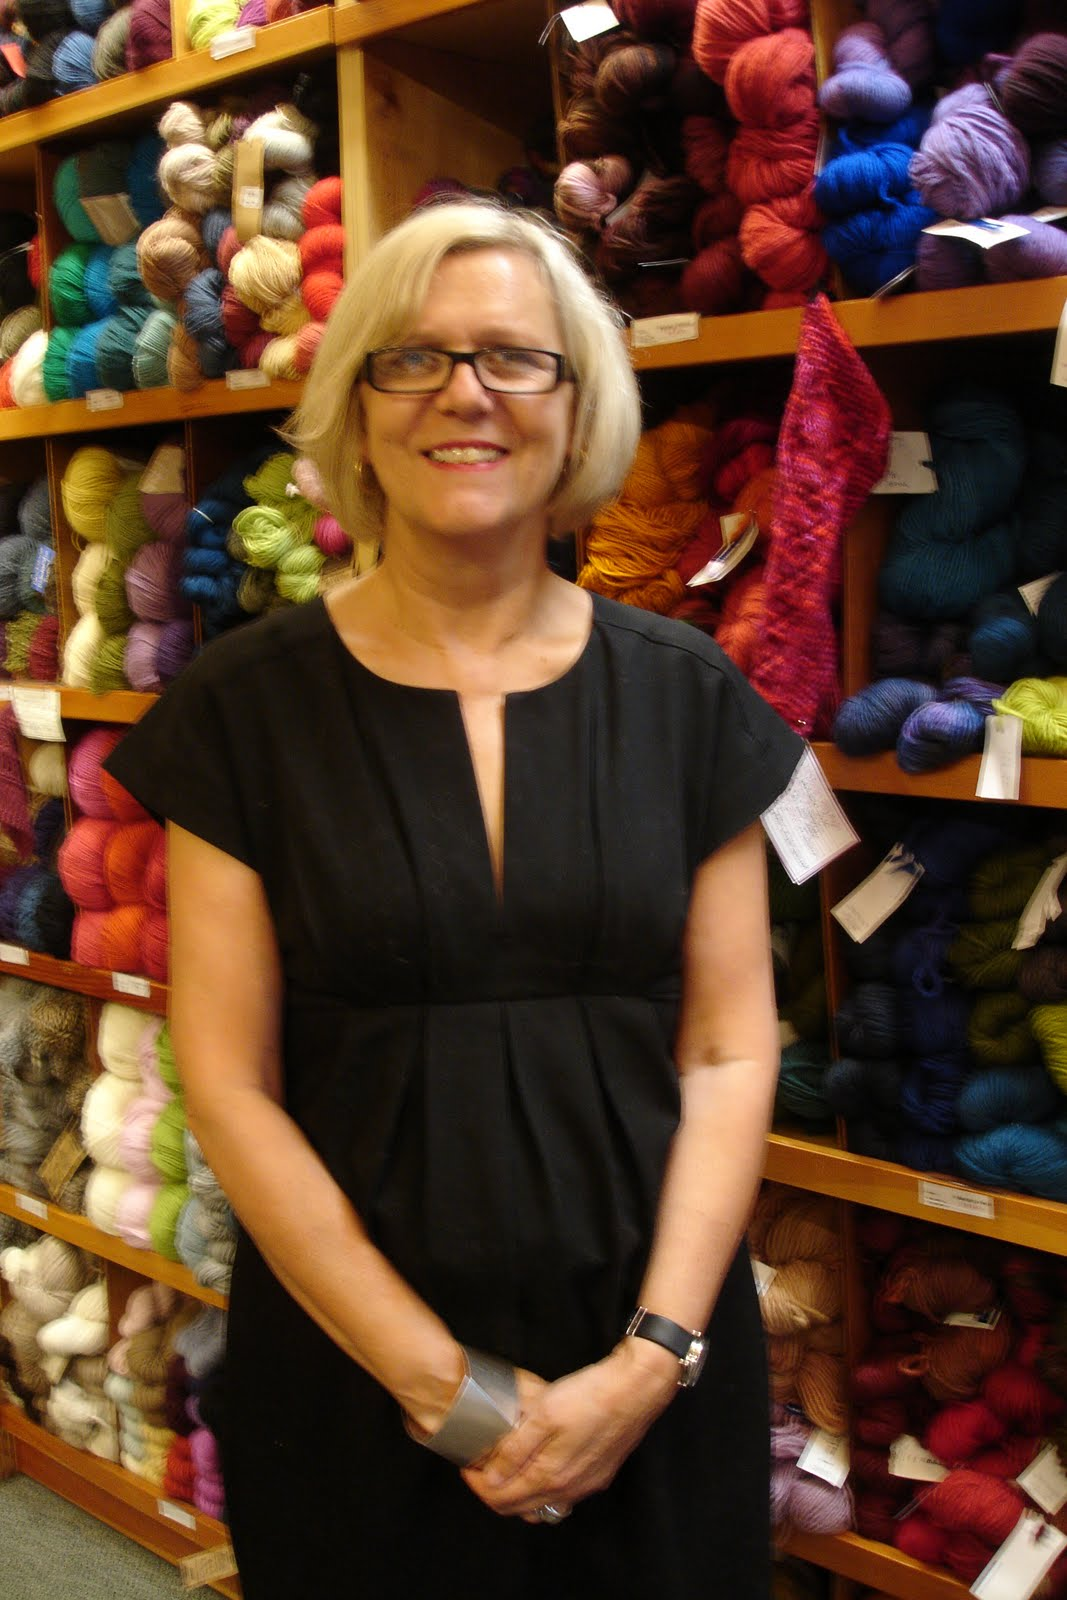 the flitter knitter i met debbie bliss